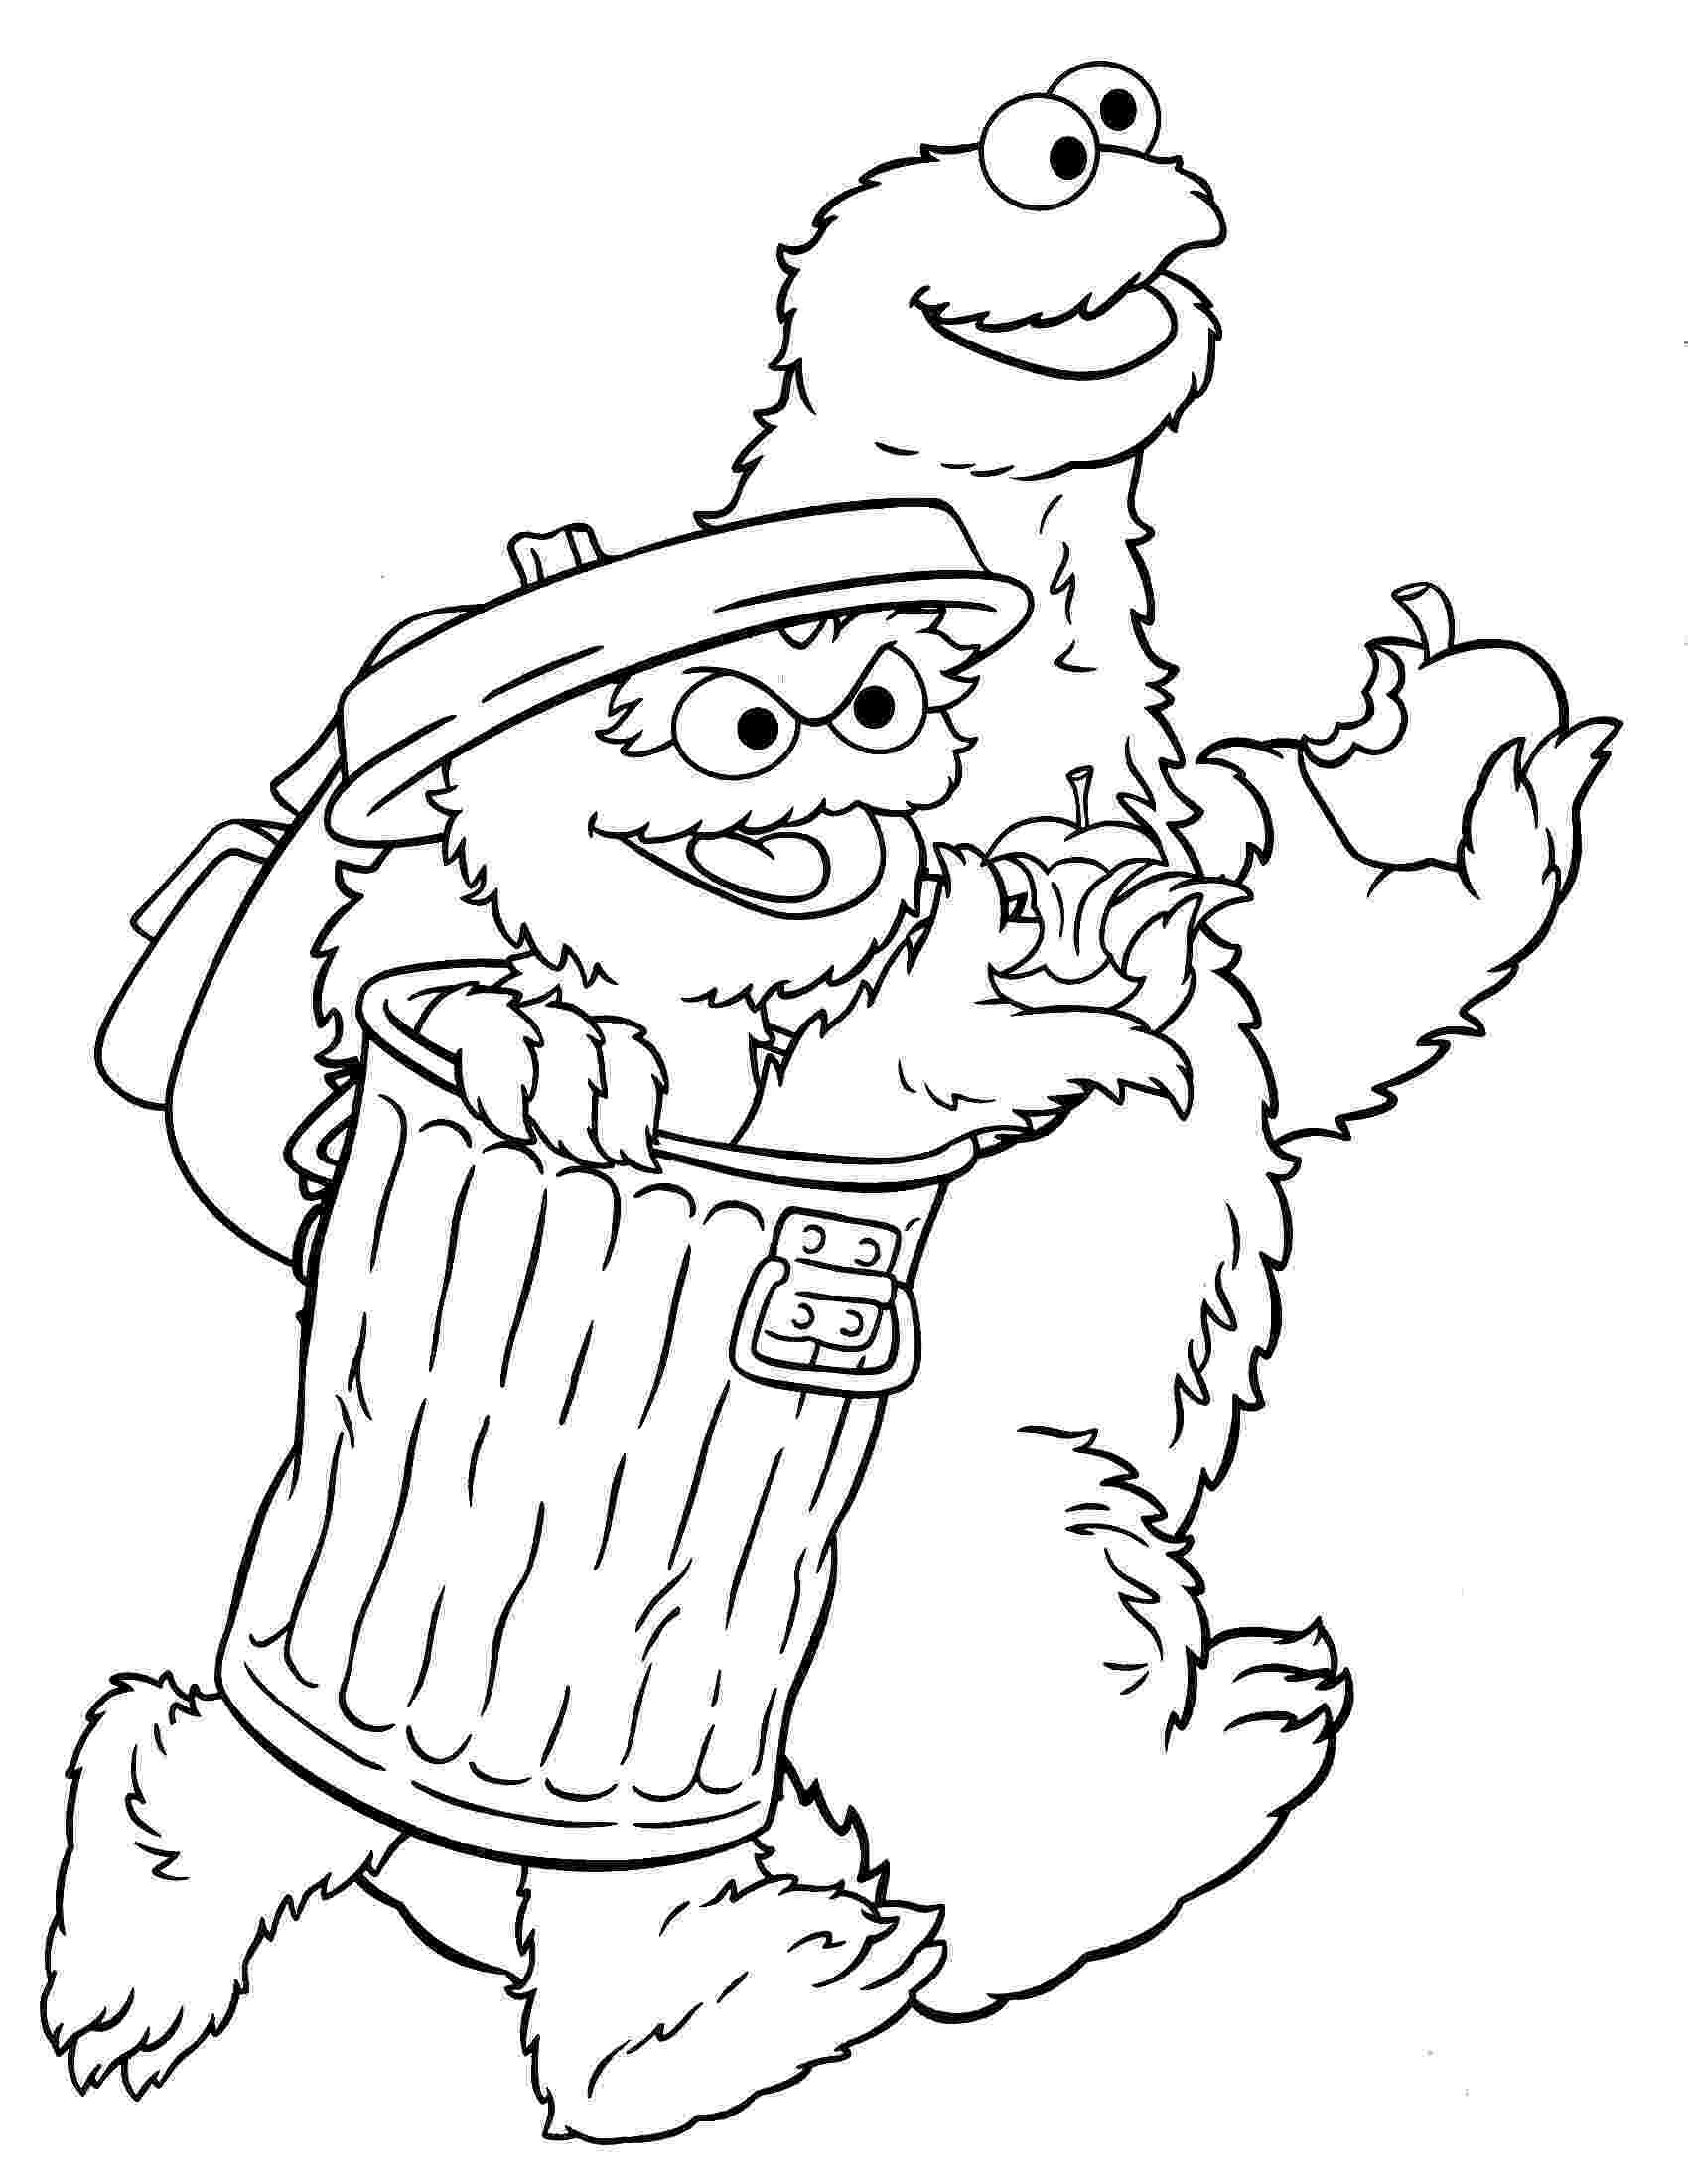 sesame street characters pictures to print sesame street coloring pages minister coloring to street sesame characters pictures print